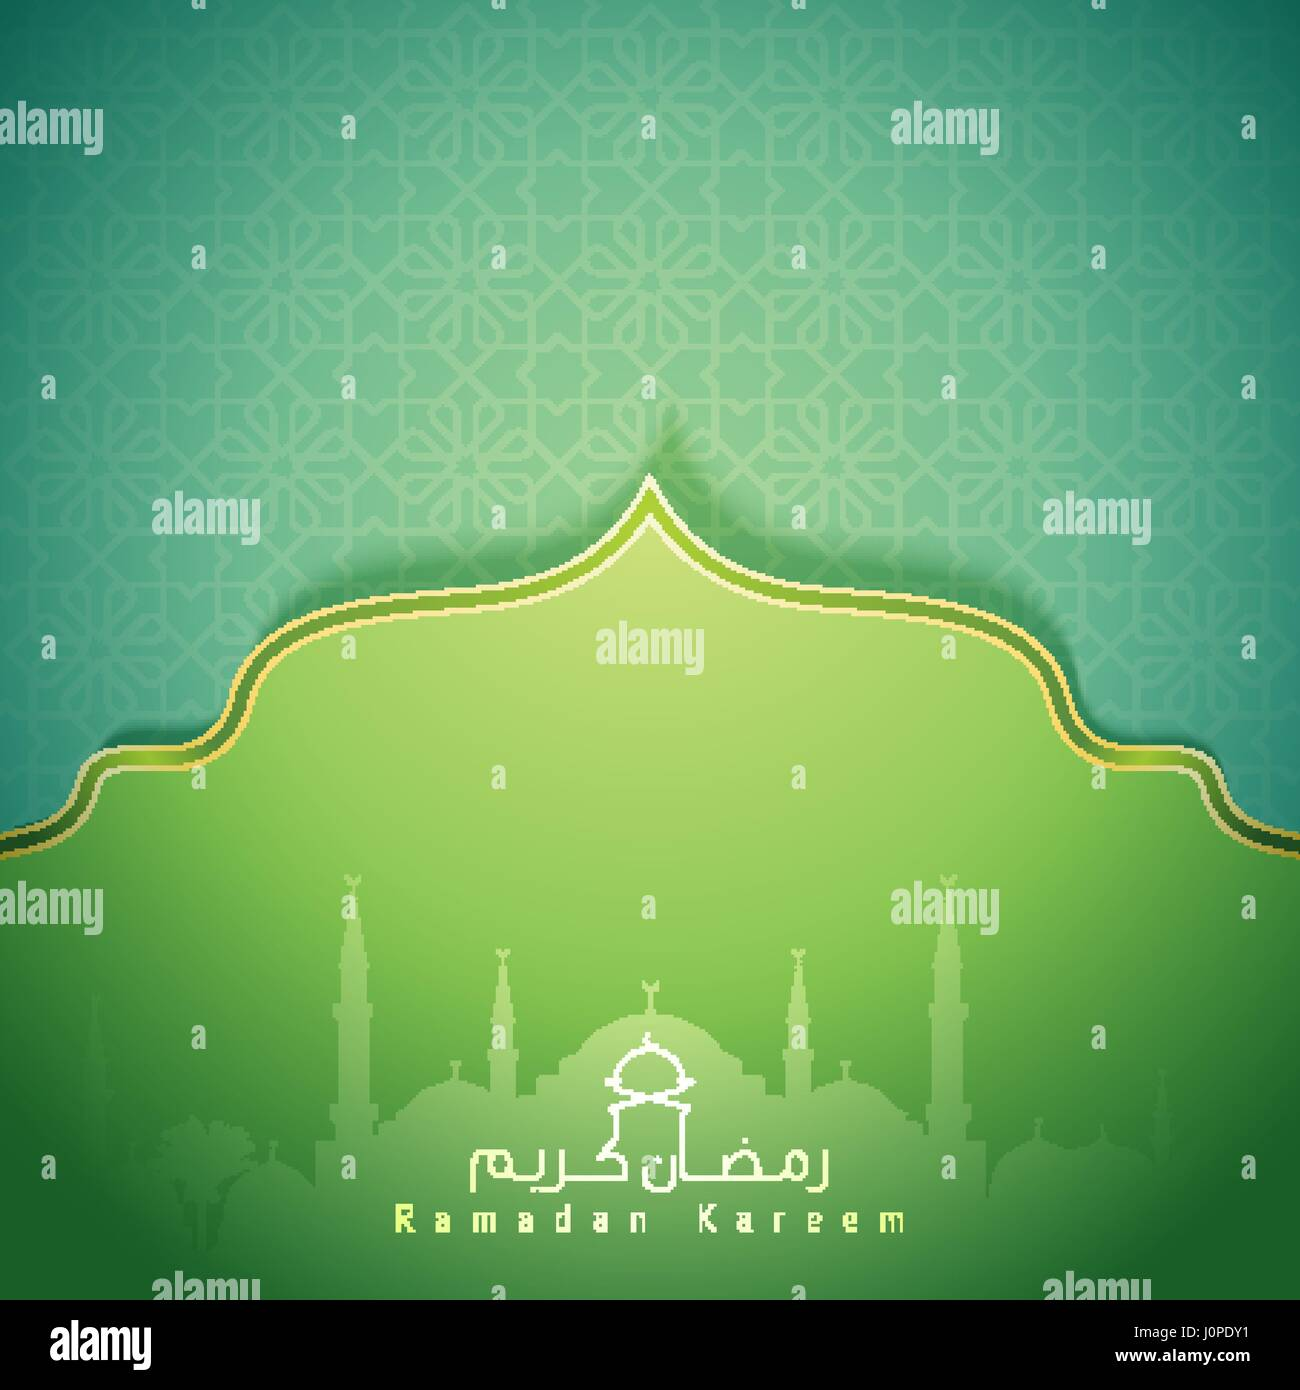 Mosque background for ramadan kareem stock photography image - Mosque Dome And Arabic Calligraphy For Greeting Background Ramadan Kareem